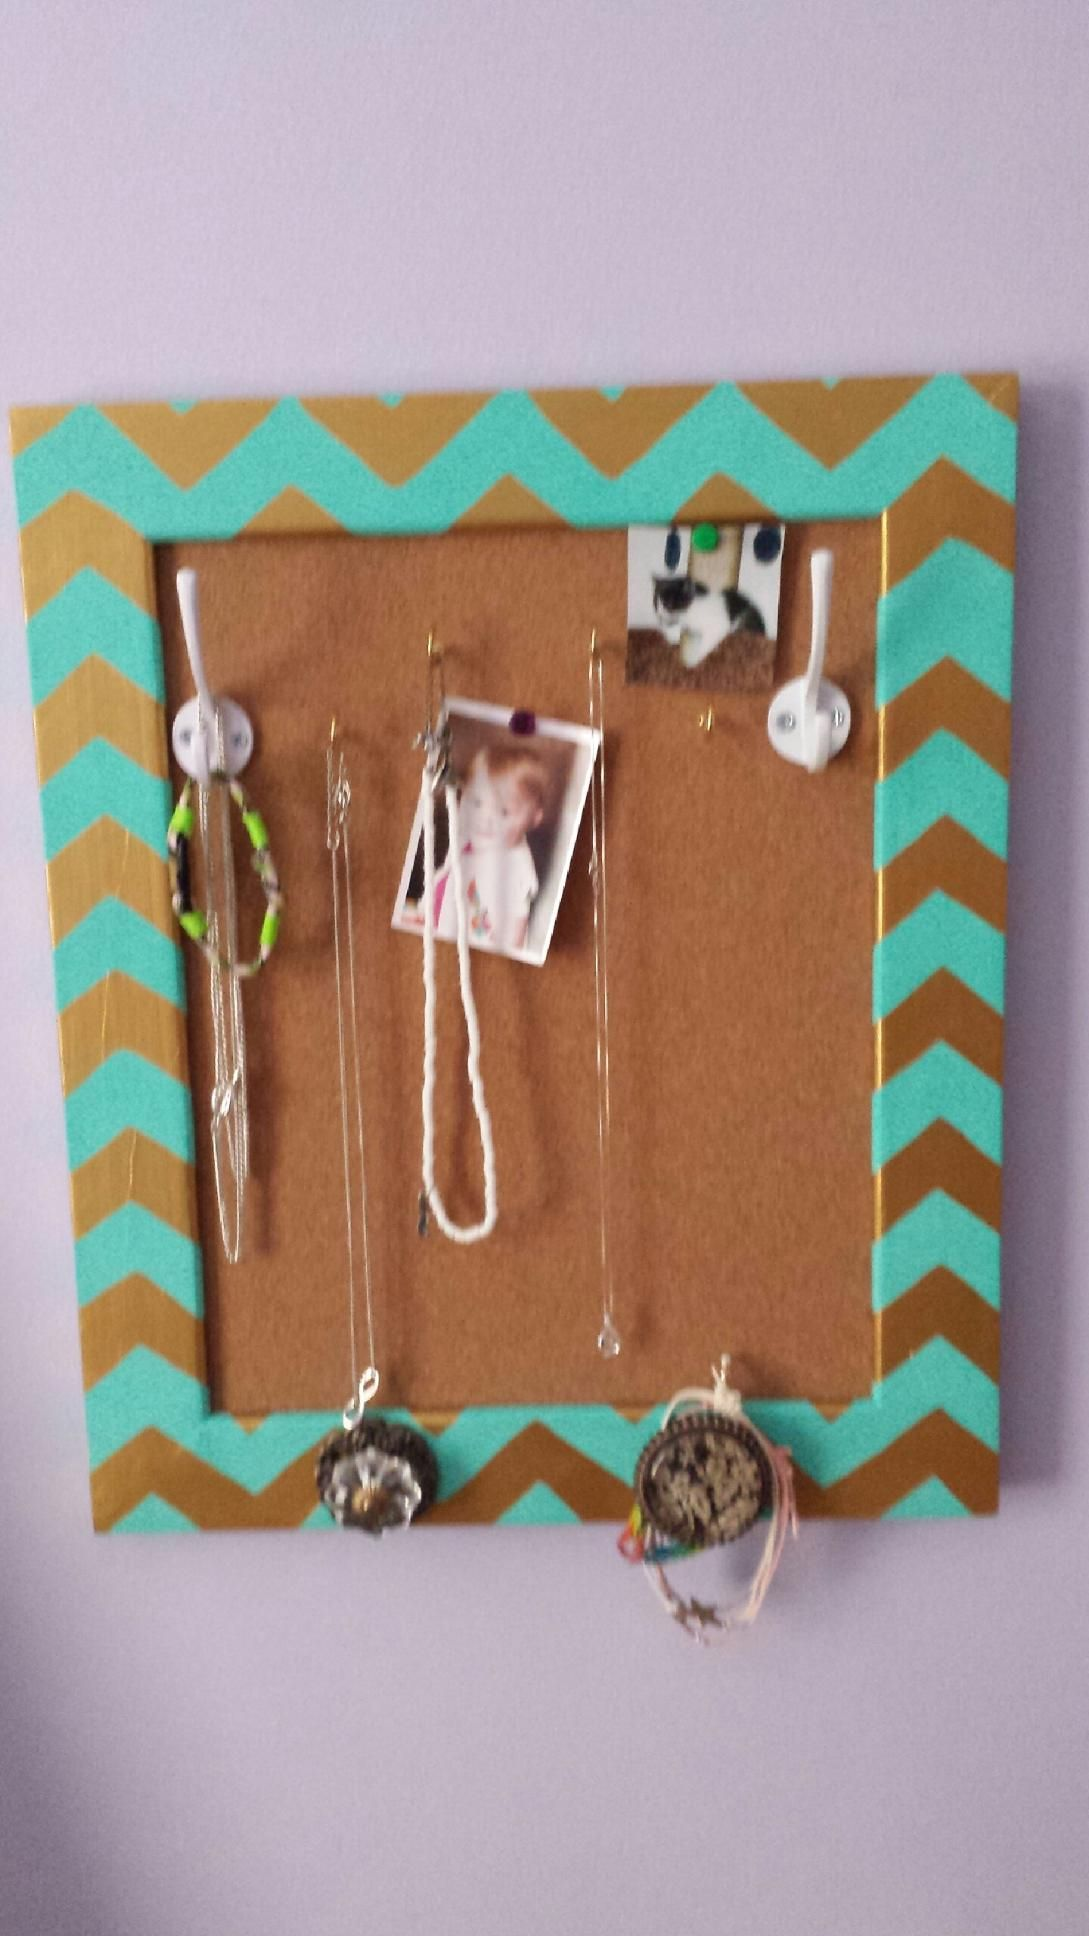 DIY Cork board jewelry holder. Made with cork board, unfinished frame, hooks, and cabinet knobs all from hobby lobby. It turns out they also sell finished products just like this that cost less than the supplies did to make it, but I think mine turned out much prettier than anything they had in store.